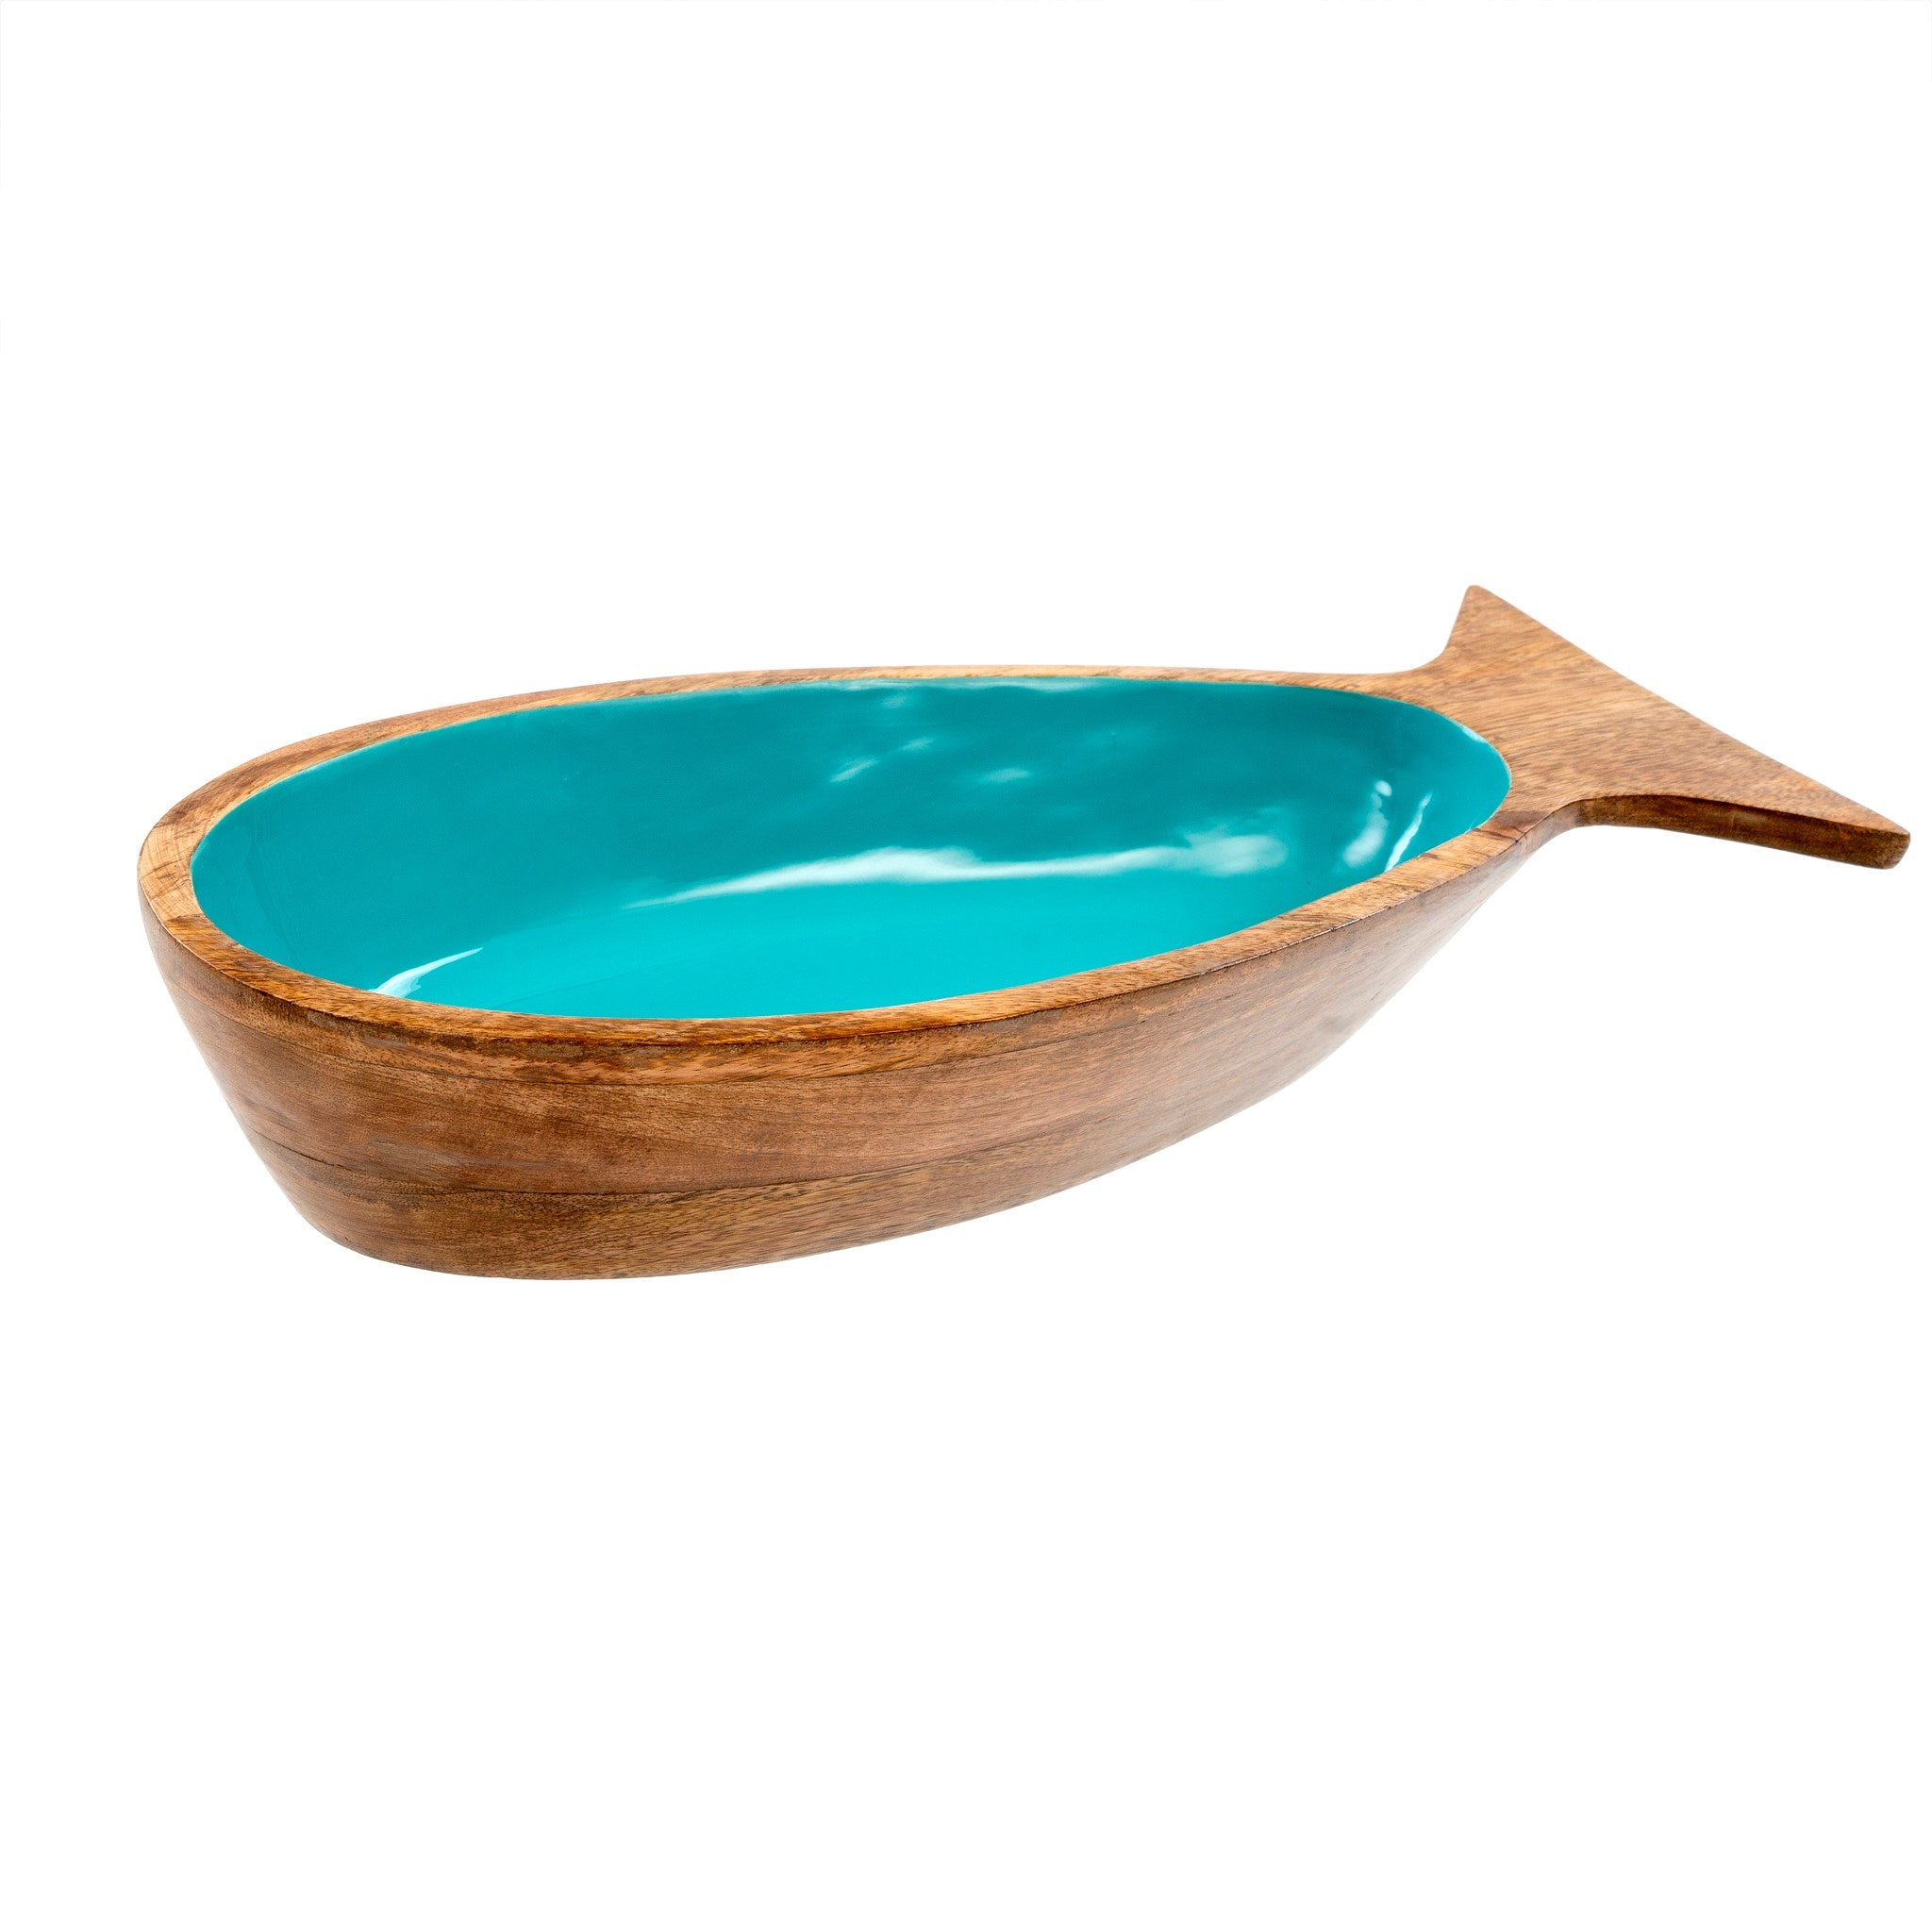 Pesca Serving Bowl - Teal